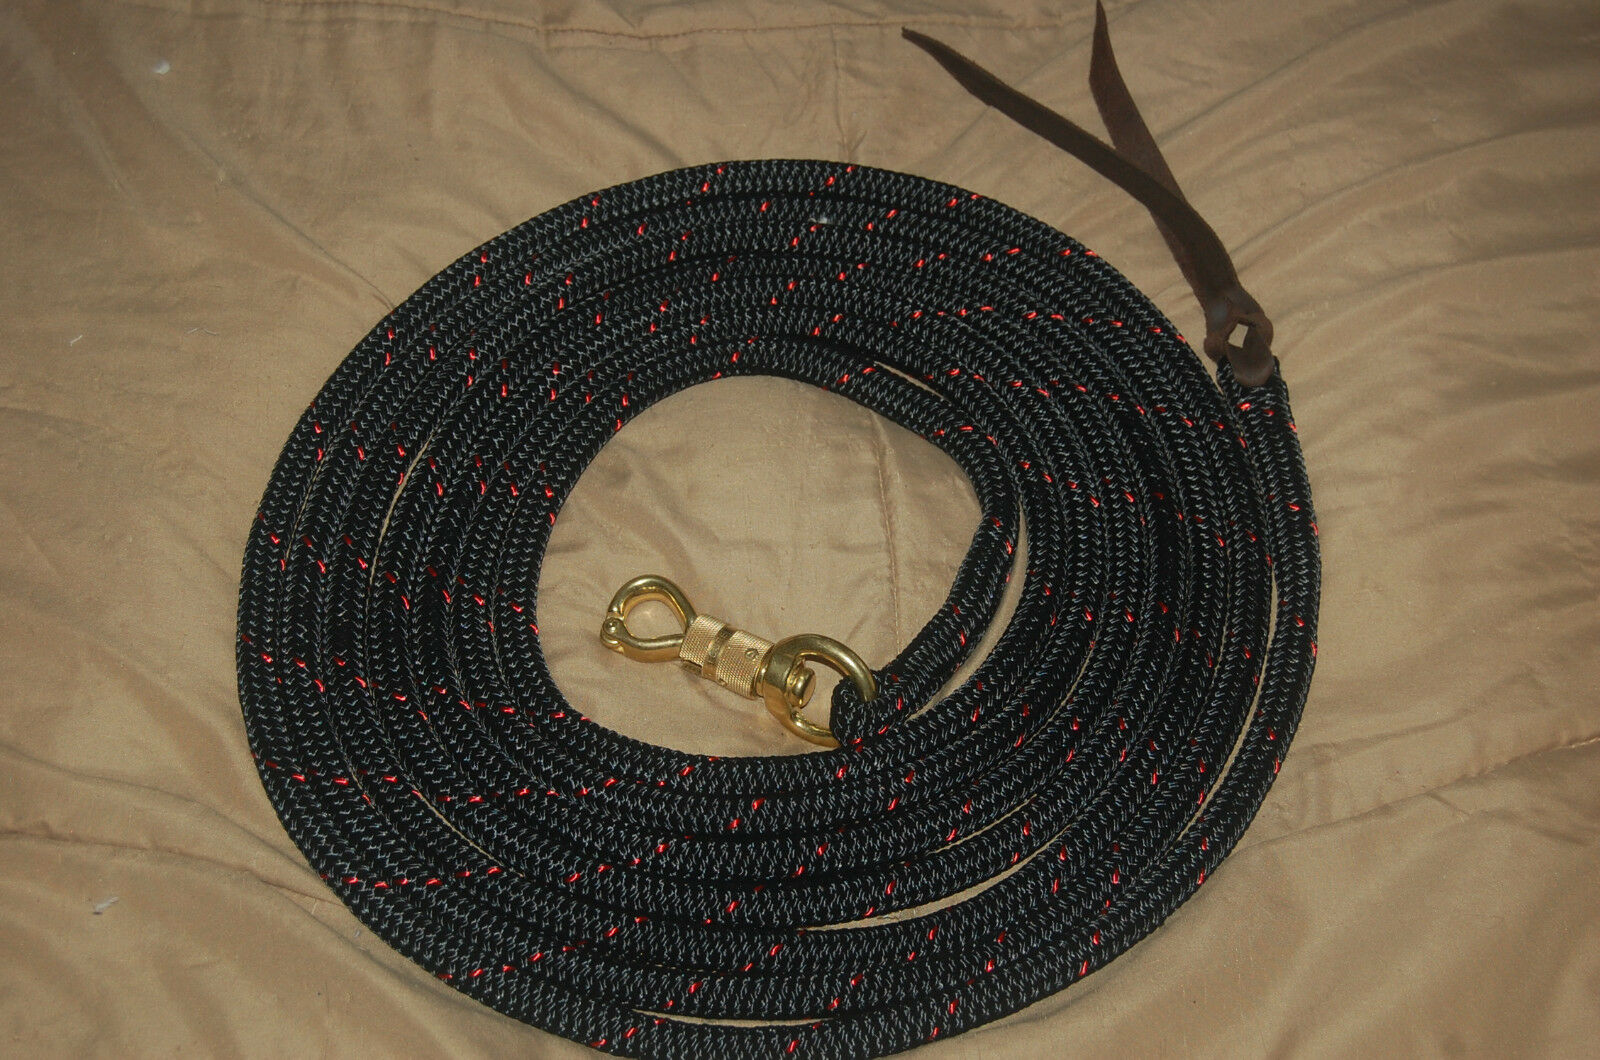 22'  LONGE LINE LEAD ROPE WITH PARELLI TWIST SNAP FOR NATURAL HORSE TRAINING  we supply the best